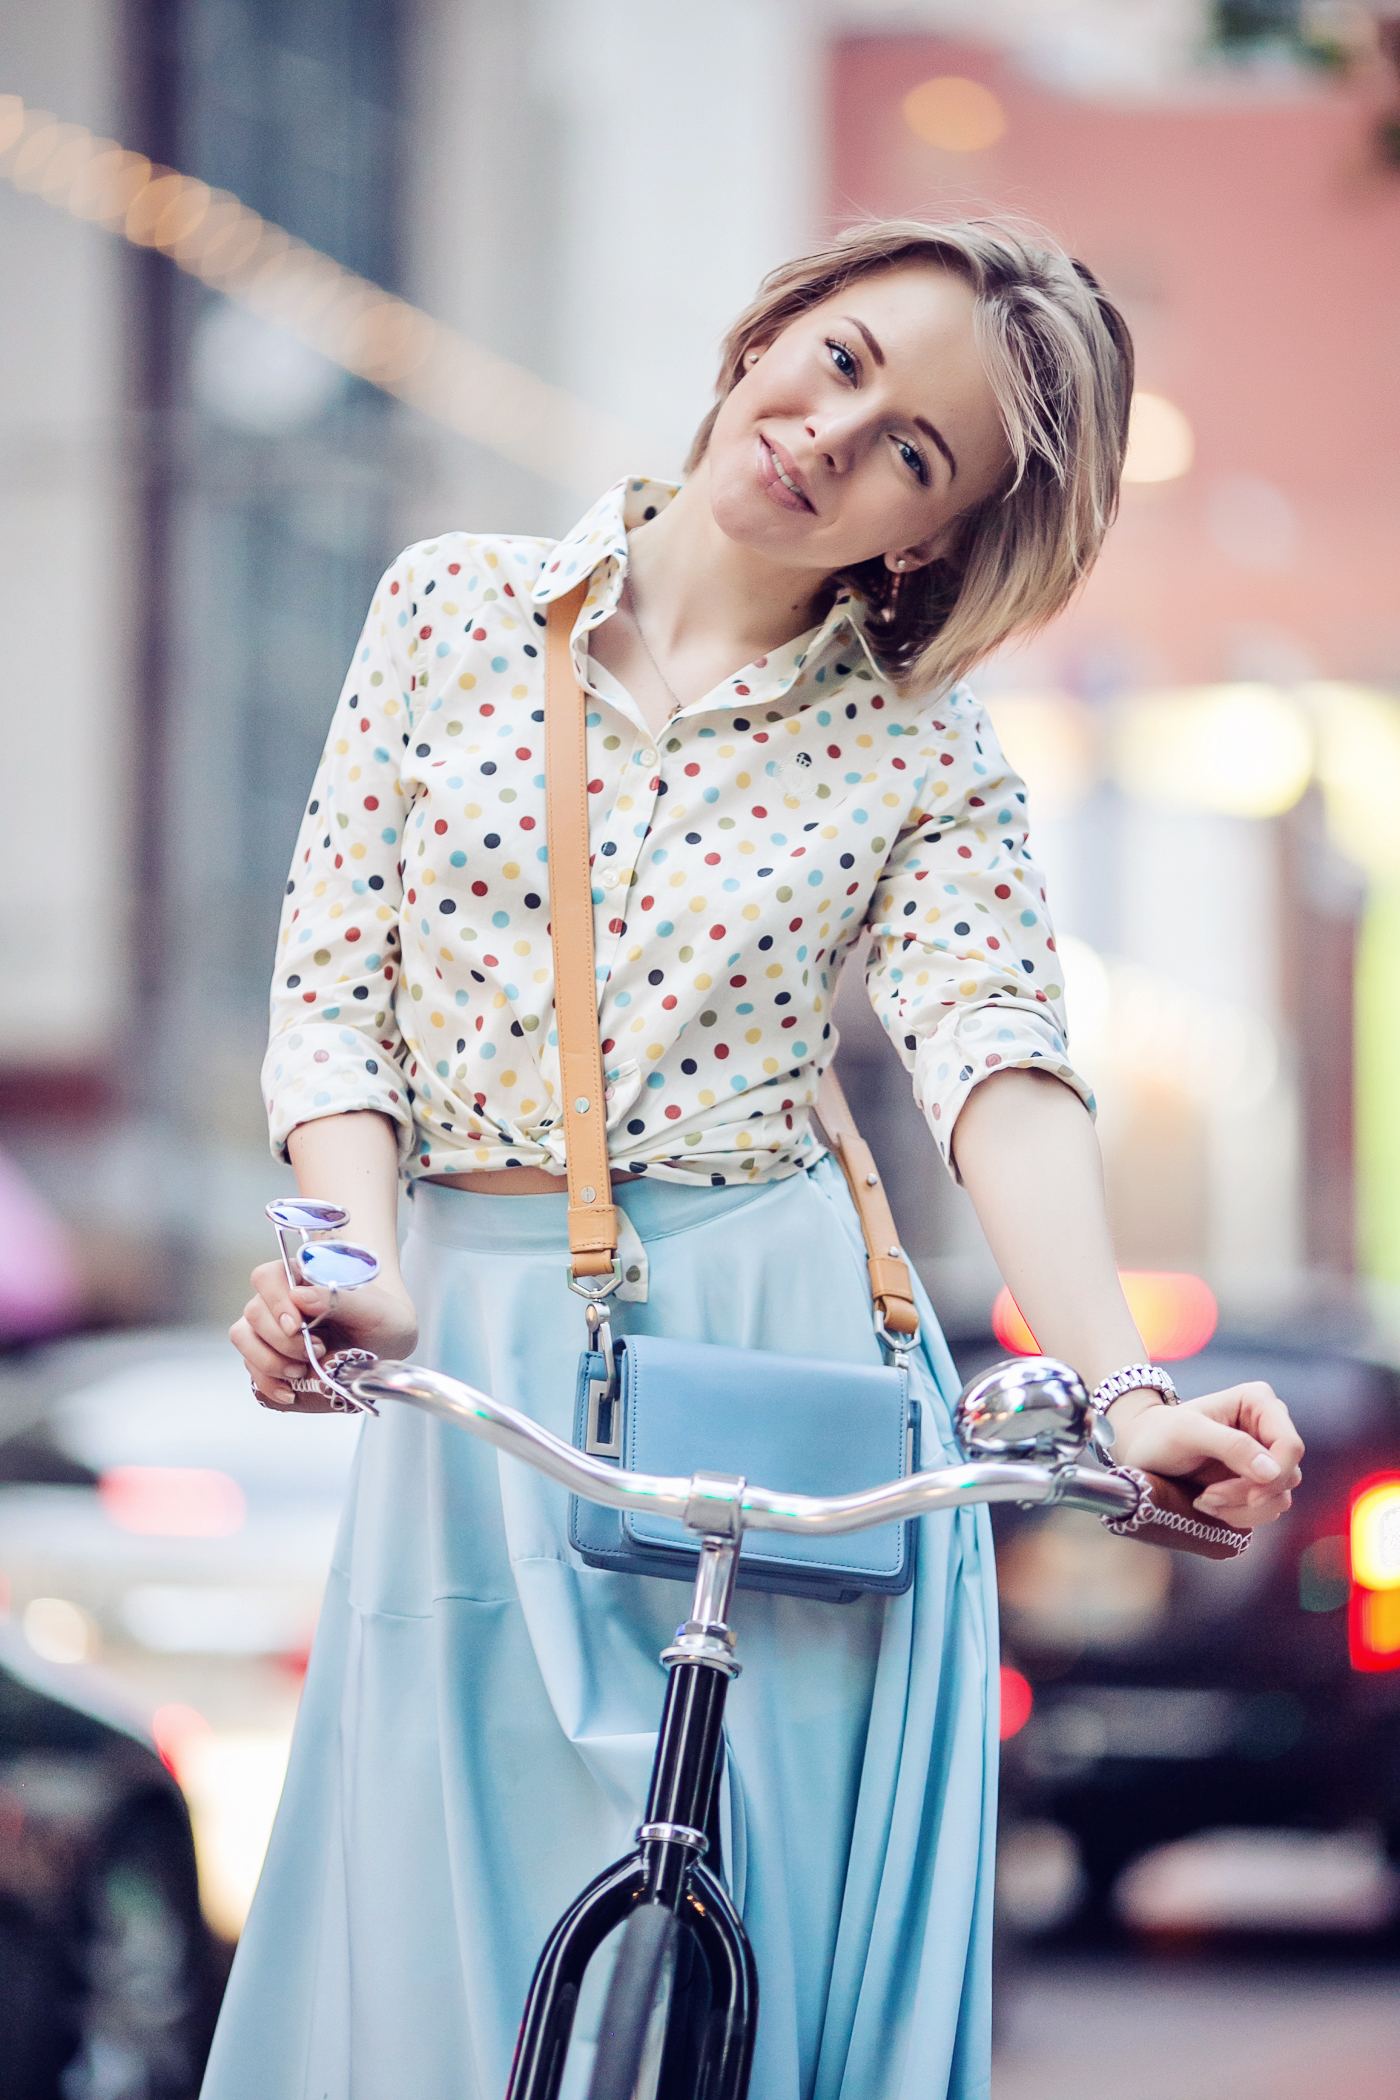 darya kamalova a fashion blogger from thecablook in dallas texas on the bycicle in polka dot shirt and blue skirt with gold espadrilles and other storie bag for rewardstyle rsthecon-40 copy